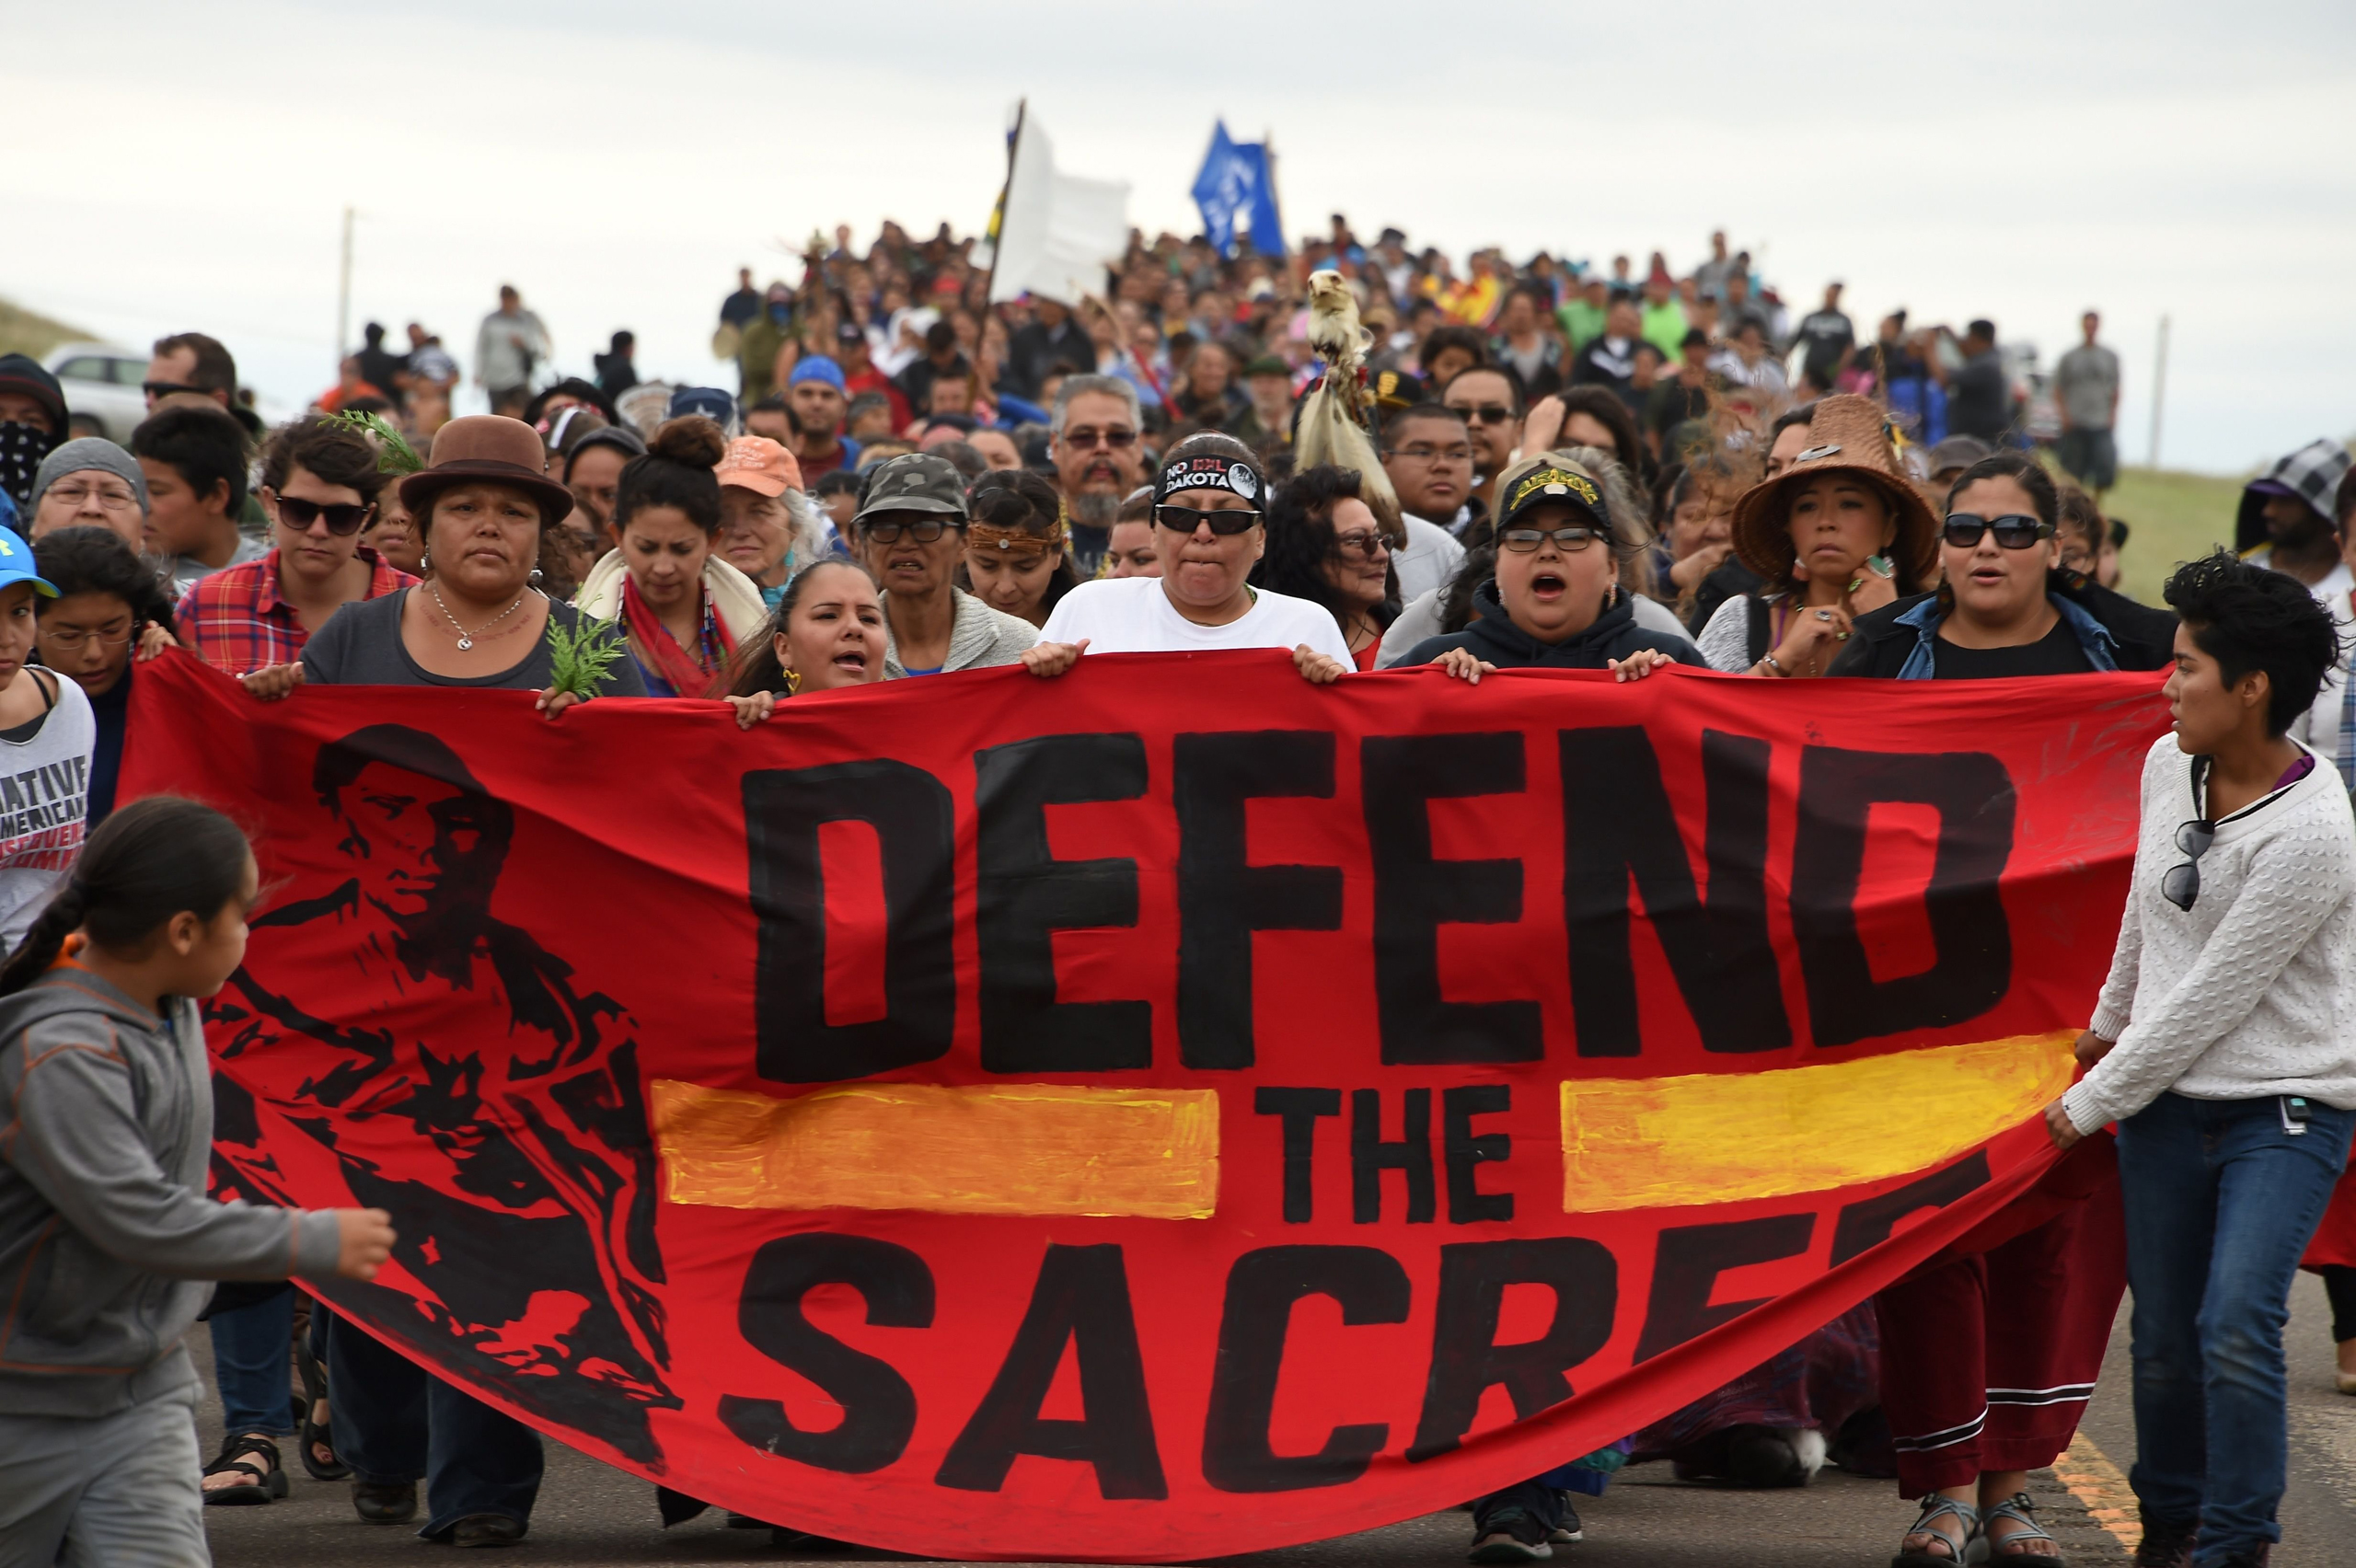 Native Americans march to a sacred burial ground site that was disturbed by bulldozers building the Dakota Access Pipeline (DAPL), near the encampment where hundreds of people gathered to join the Standing Rock Sioux Tribe's protest of the oil pipeline that is slated to cross the Missouri River near Cannon Ball, North Dakota, Sept. 4, 2016.